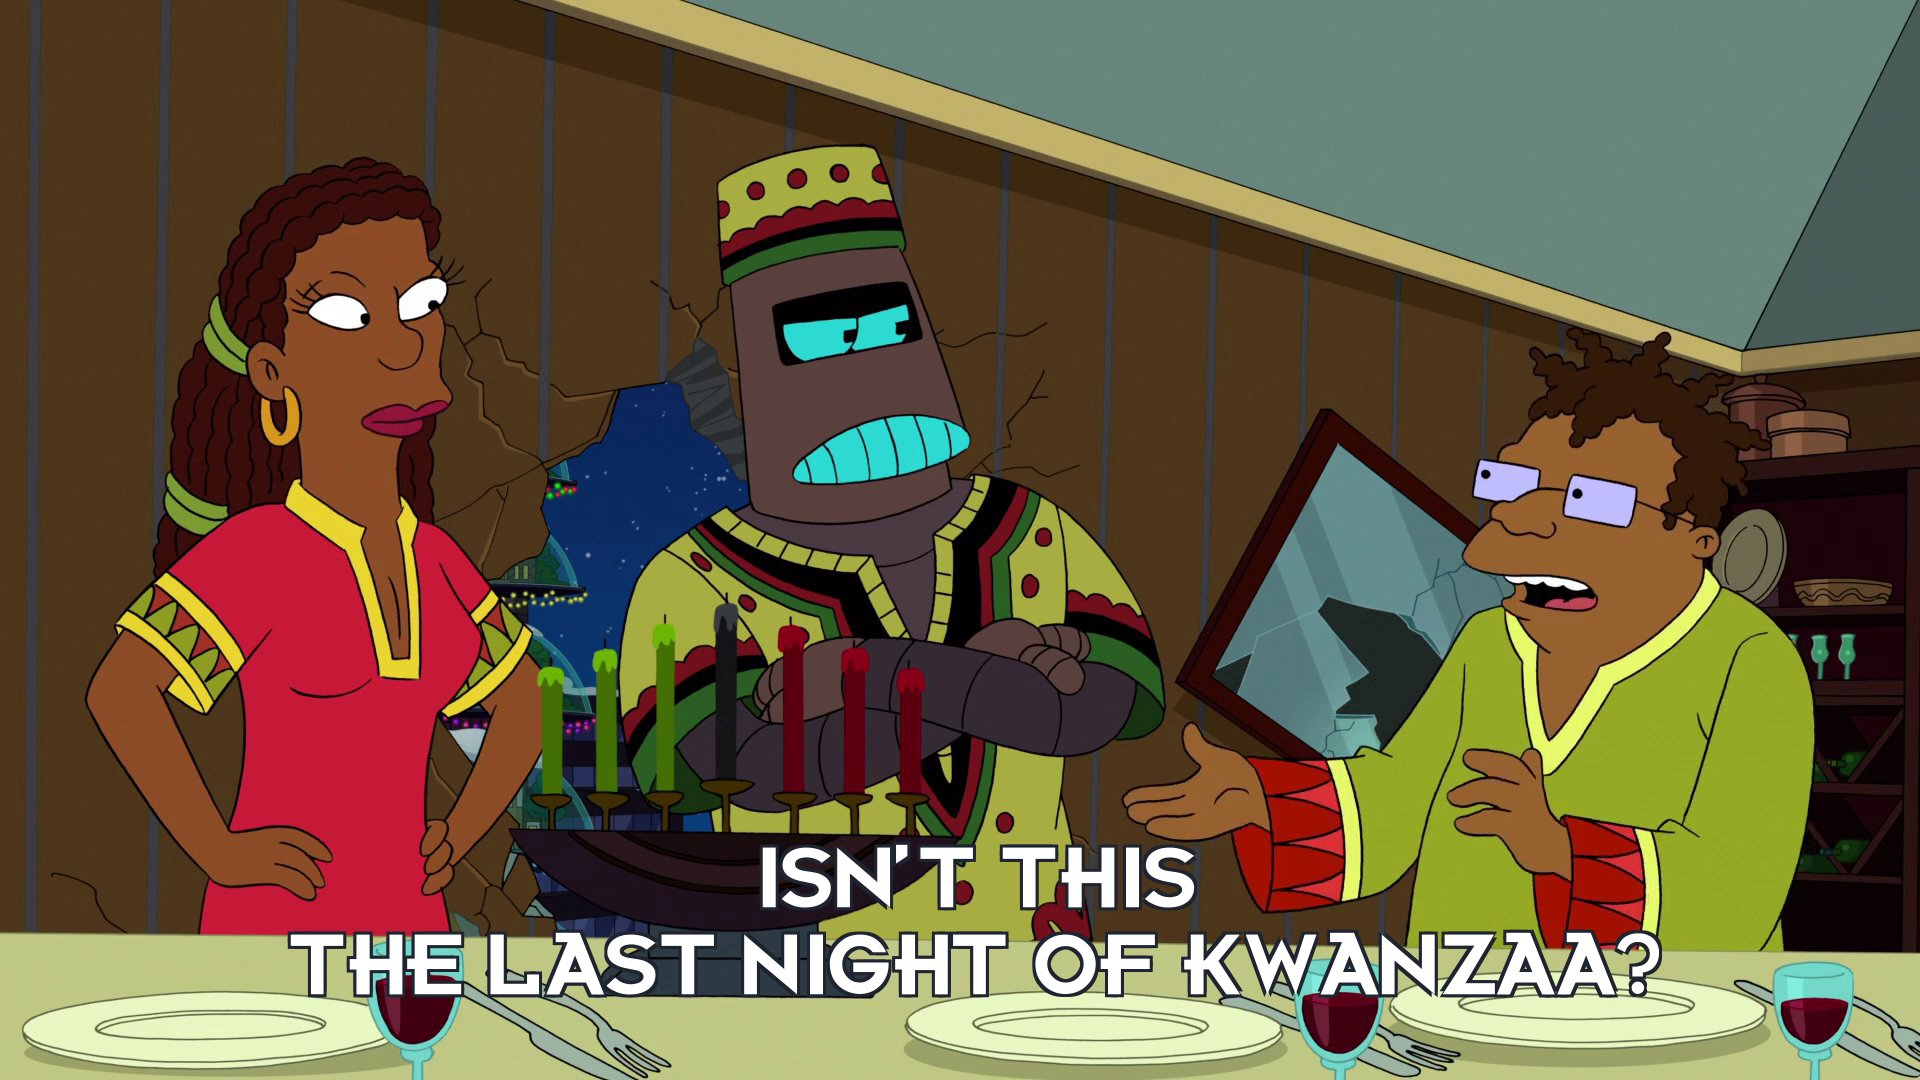 Hermes Conrad: Isn't this the last night of Kwanzaa?